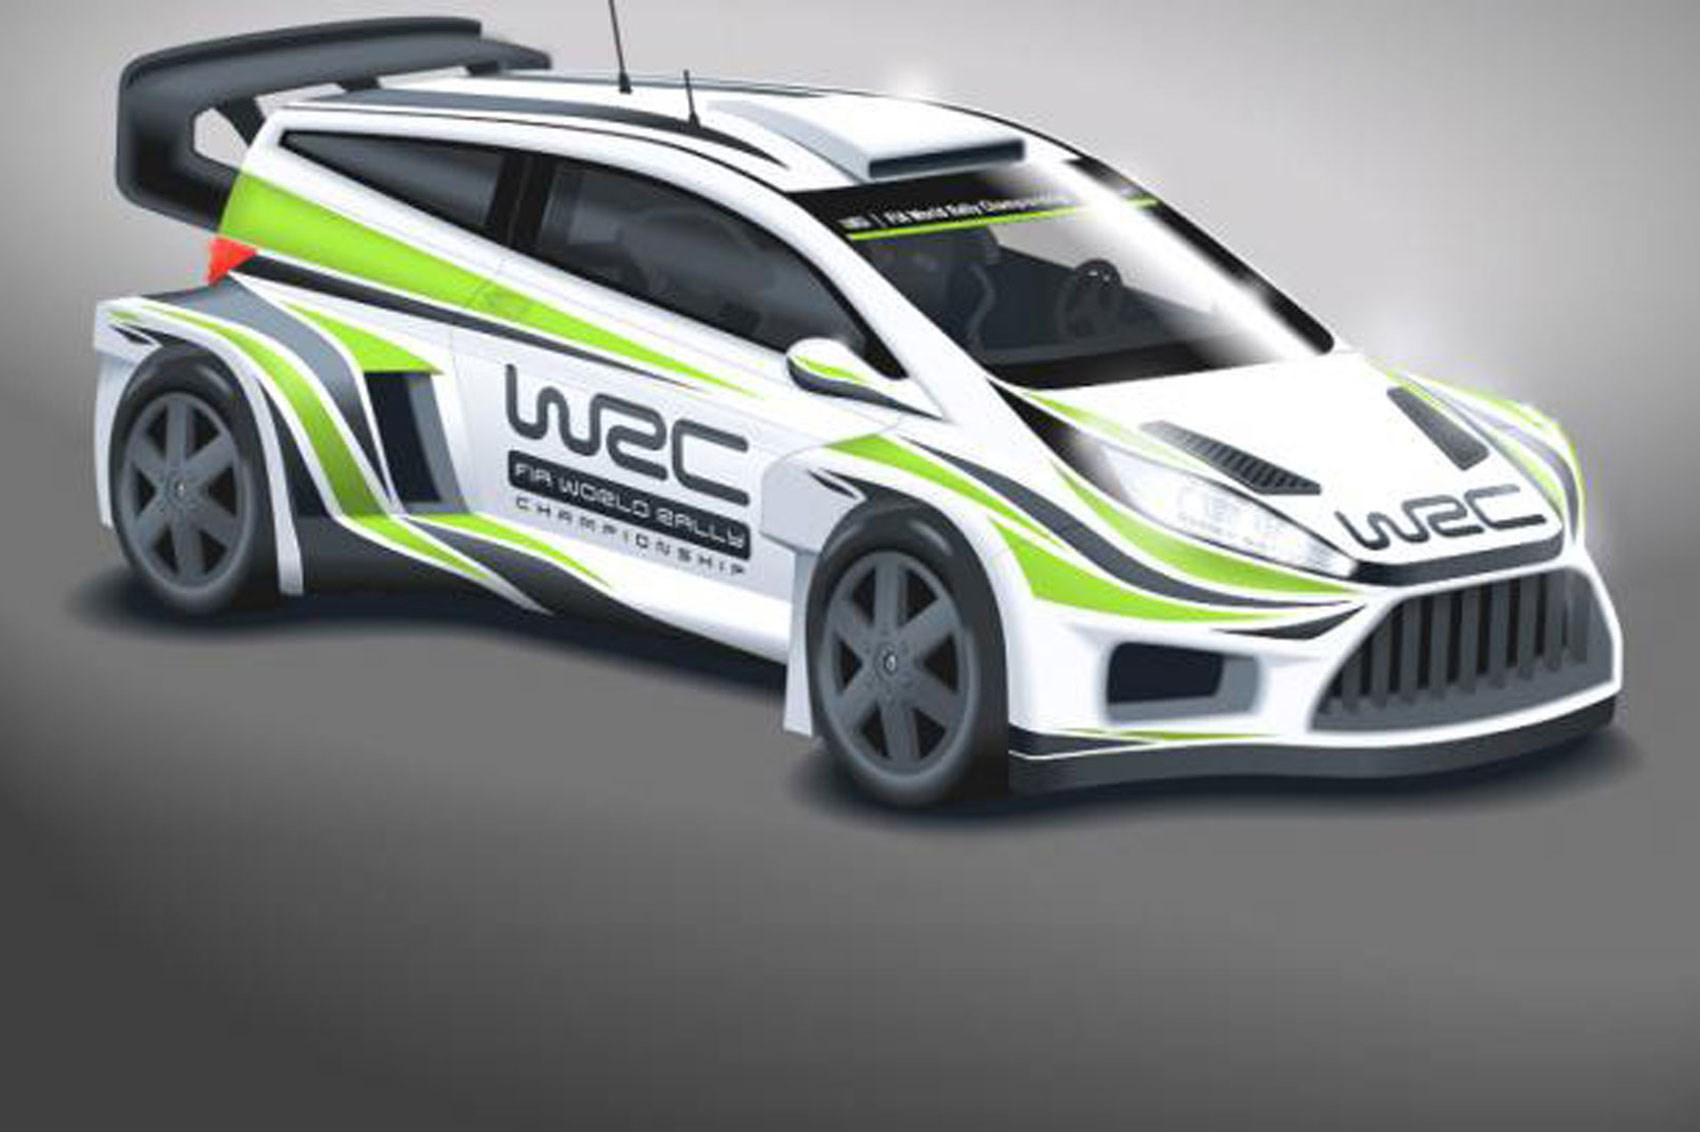 Ultrablogus  Terrific Wild New Look For Wrc Cars In  By Car Magazine With Lovable Wrc Cars Will Get Wider Bodies Bigger Wings And More Power For  With Astonishing Chrysler Town And Country  Interior Also  Toyota Runner Interior In Addition  Ford Edge Sport Interior And White Jeep Wrangler With Tan Interior As Well As  Jeep Grand Cherokee Interior Additionally  Chrysler  Srt Interior From Carmagazinecouk With Ultrablogus  Lovable Wild New Look For Wrc Cars In  By Car Magazine With Astonishing Wrc Cars Will Get Wider Bodies Bigger Wings And More Power For  And Terrific Chrysler Town And Country  Interior Also  Toyota Runner Interior In Addition  Ford Edge Sport Interior From Carmagazinecouk